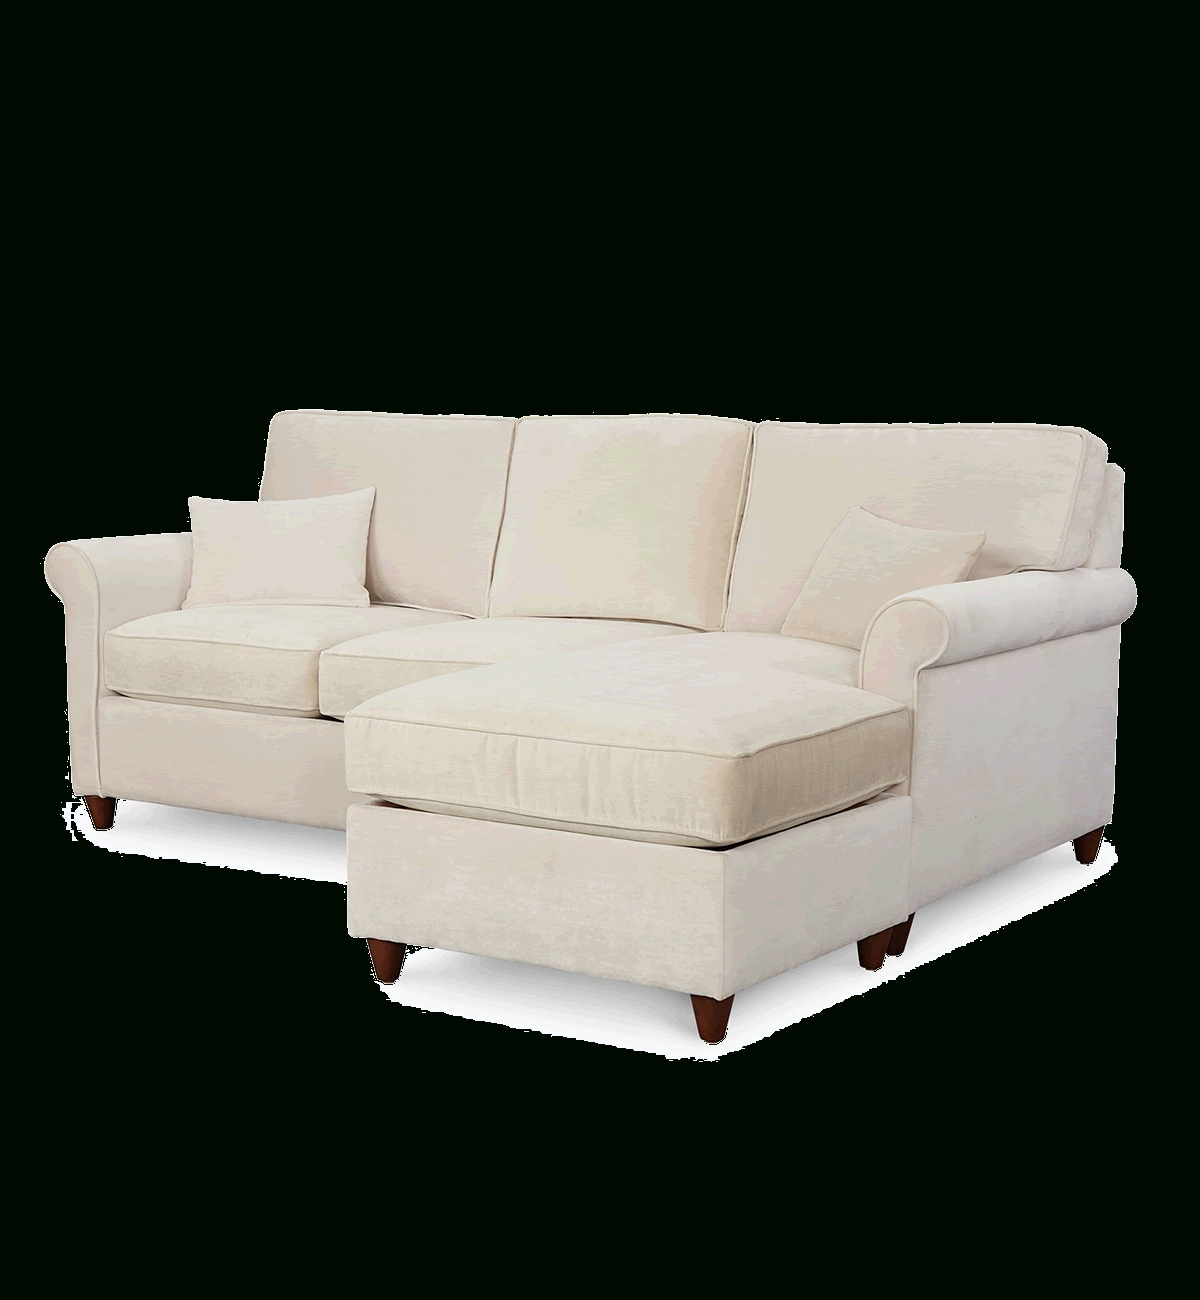 Macys Leather Sofas Pertaining To Well Liked Leather Couches And Sofas – Macy's (View 10 of 15)